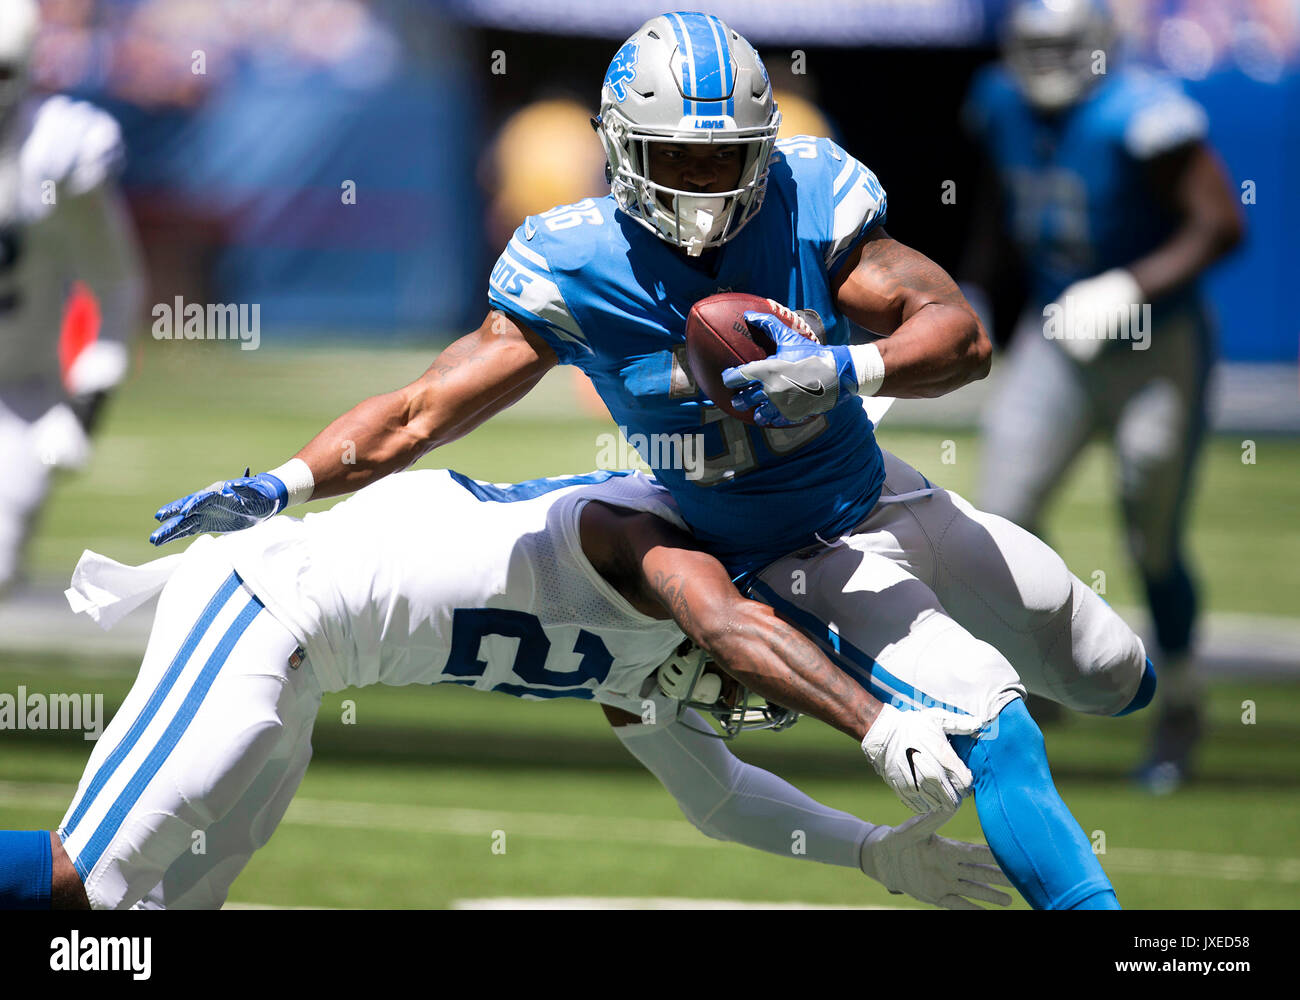 fcbbb1a86 ... running back Dwayne Washington (36) runs with the ball during NFL  football pre-season game action between the Detroit Lions and the Indianapolis  Colts ...